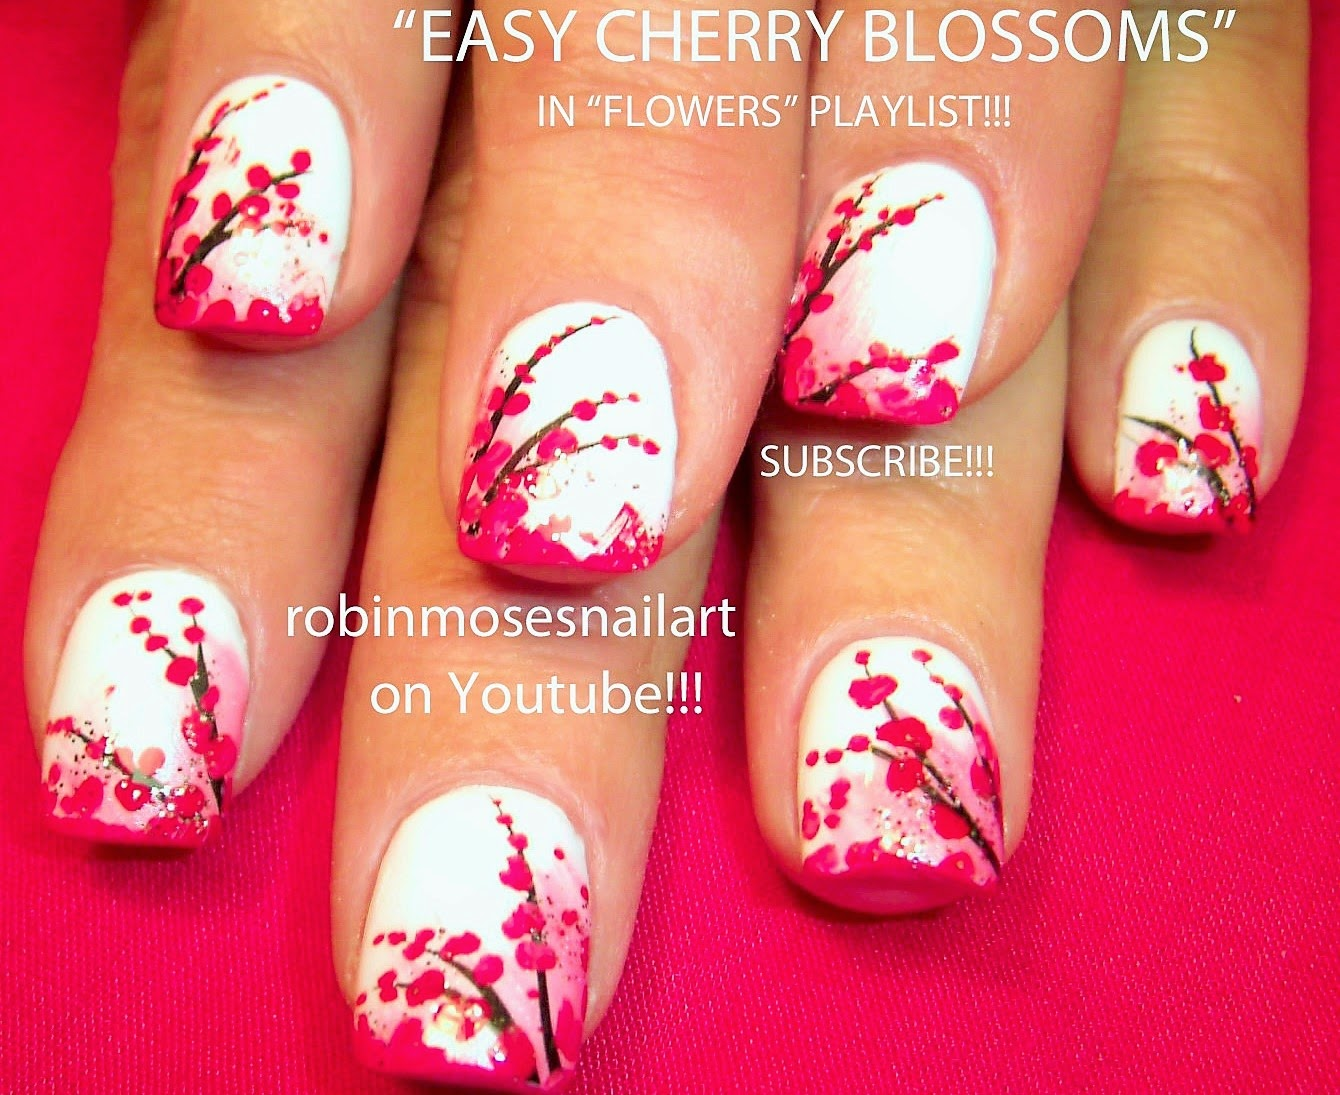 Robin moses nail art cherry blossom nail art nails spring flower nail art playlist easy nail art tutorials floral nails design ideas for beginners to advanced nail techs prinsesfo Gallery